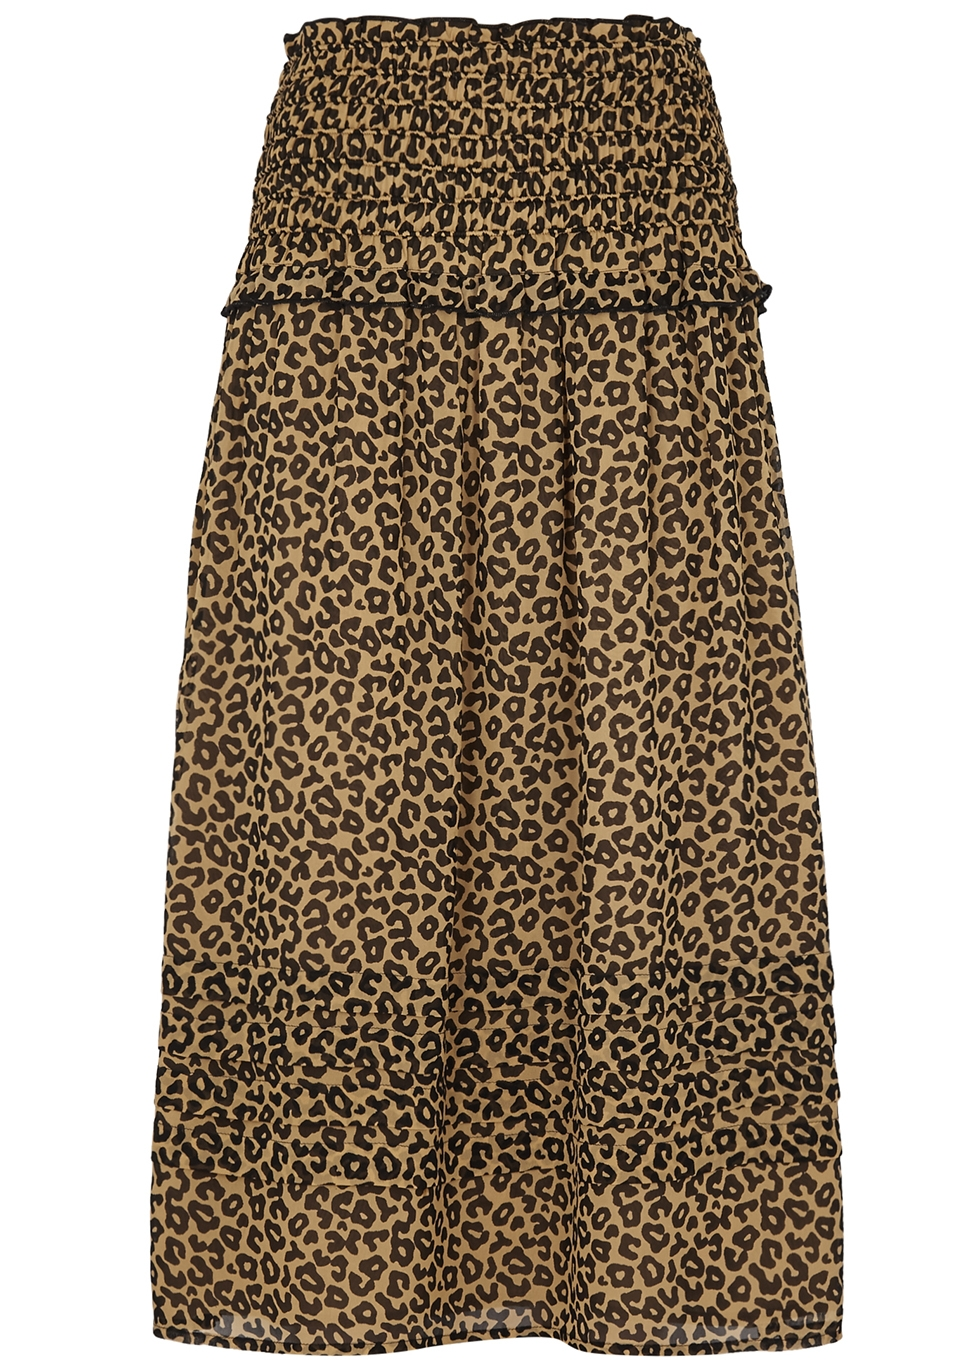 SEA NY Lottie Leopard-Print Georgette Skirt